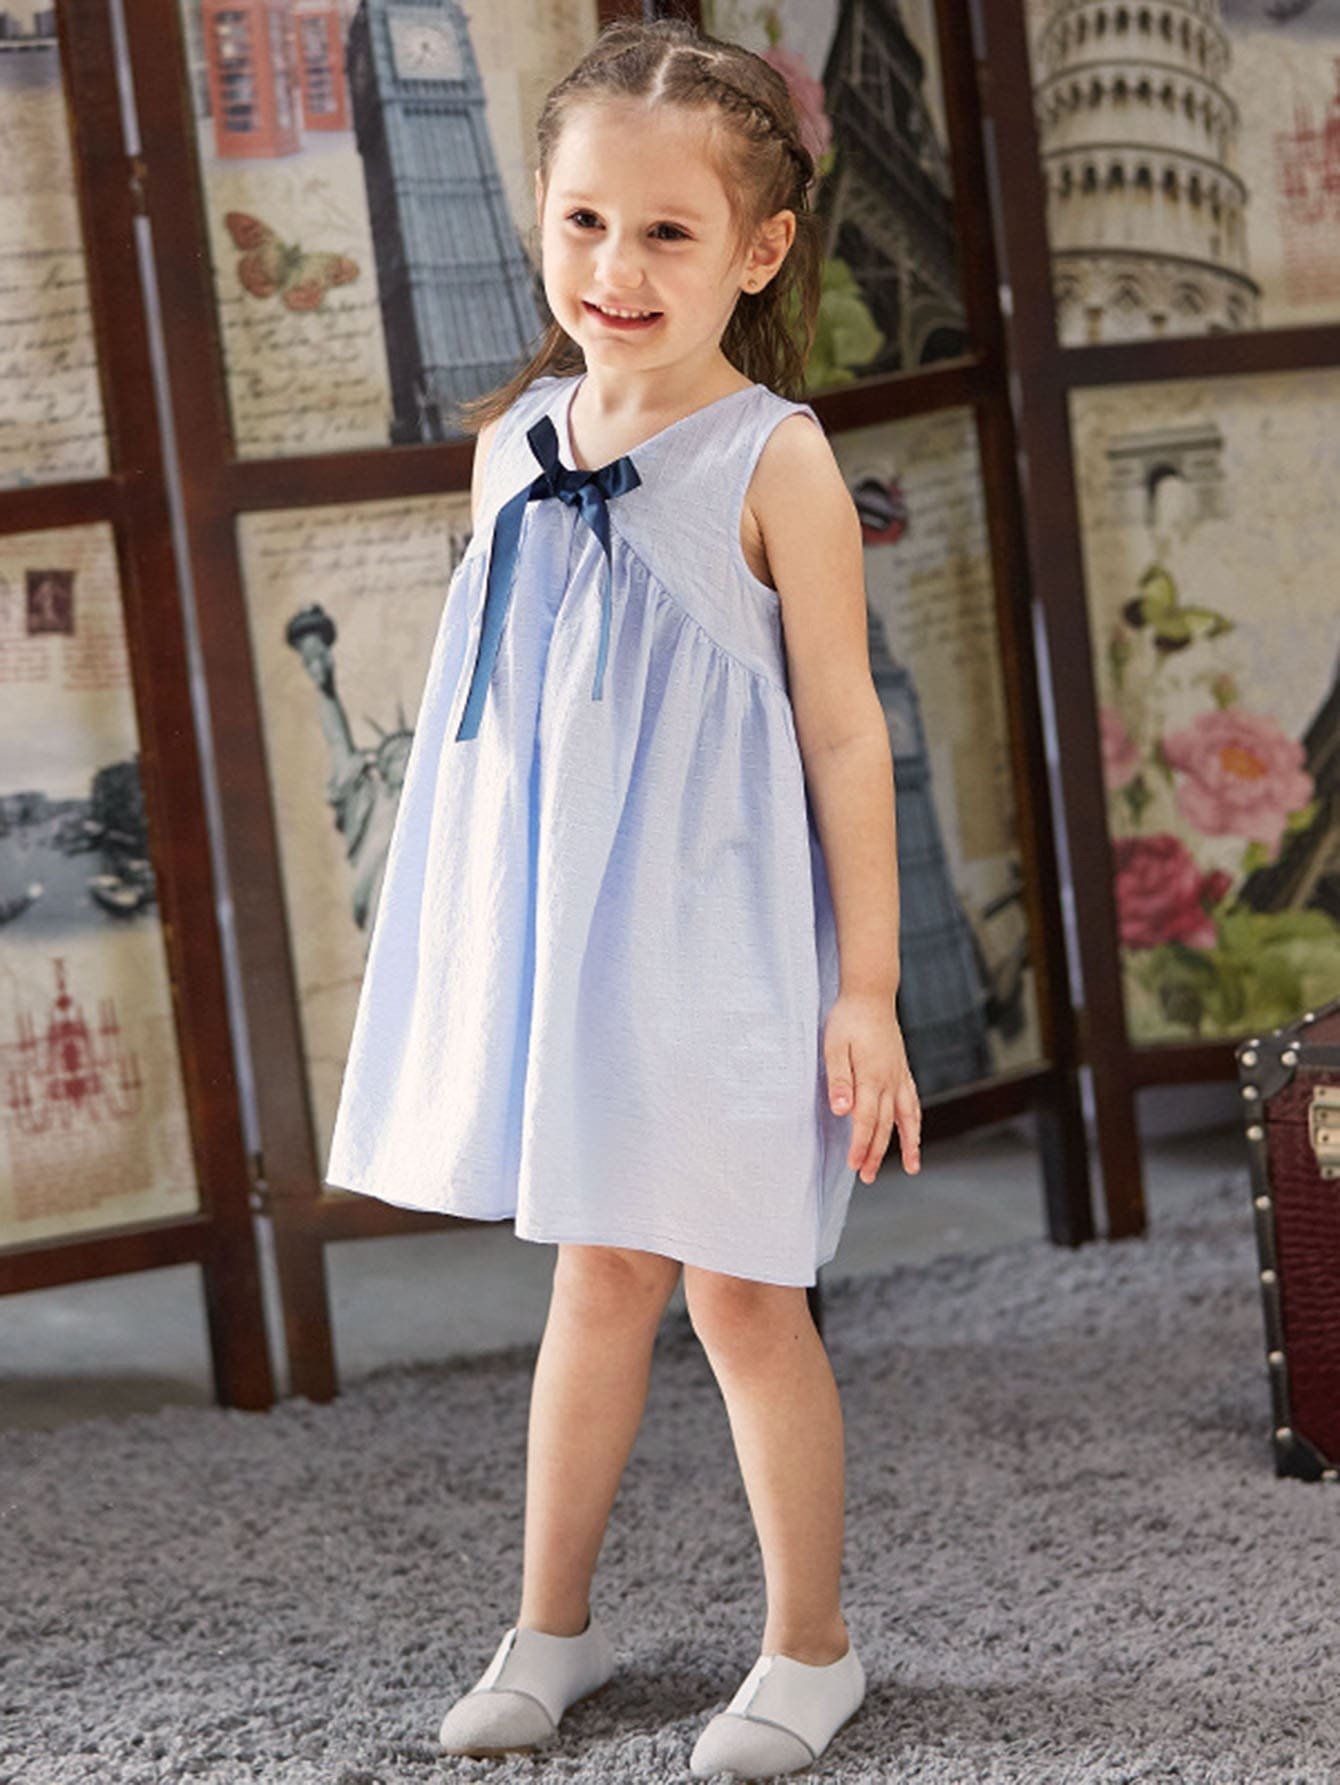 Girls Bow Front Sleeveless Dress 2017 new brand baby girls summer dress kids white bow dress for girls children navy leisure fashion girls clothes